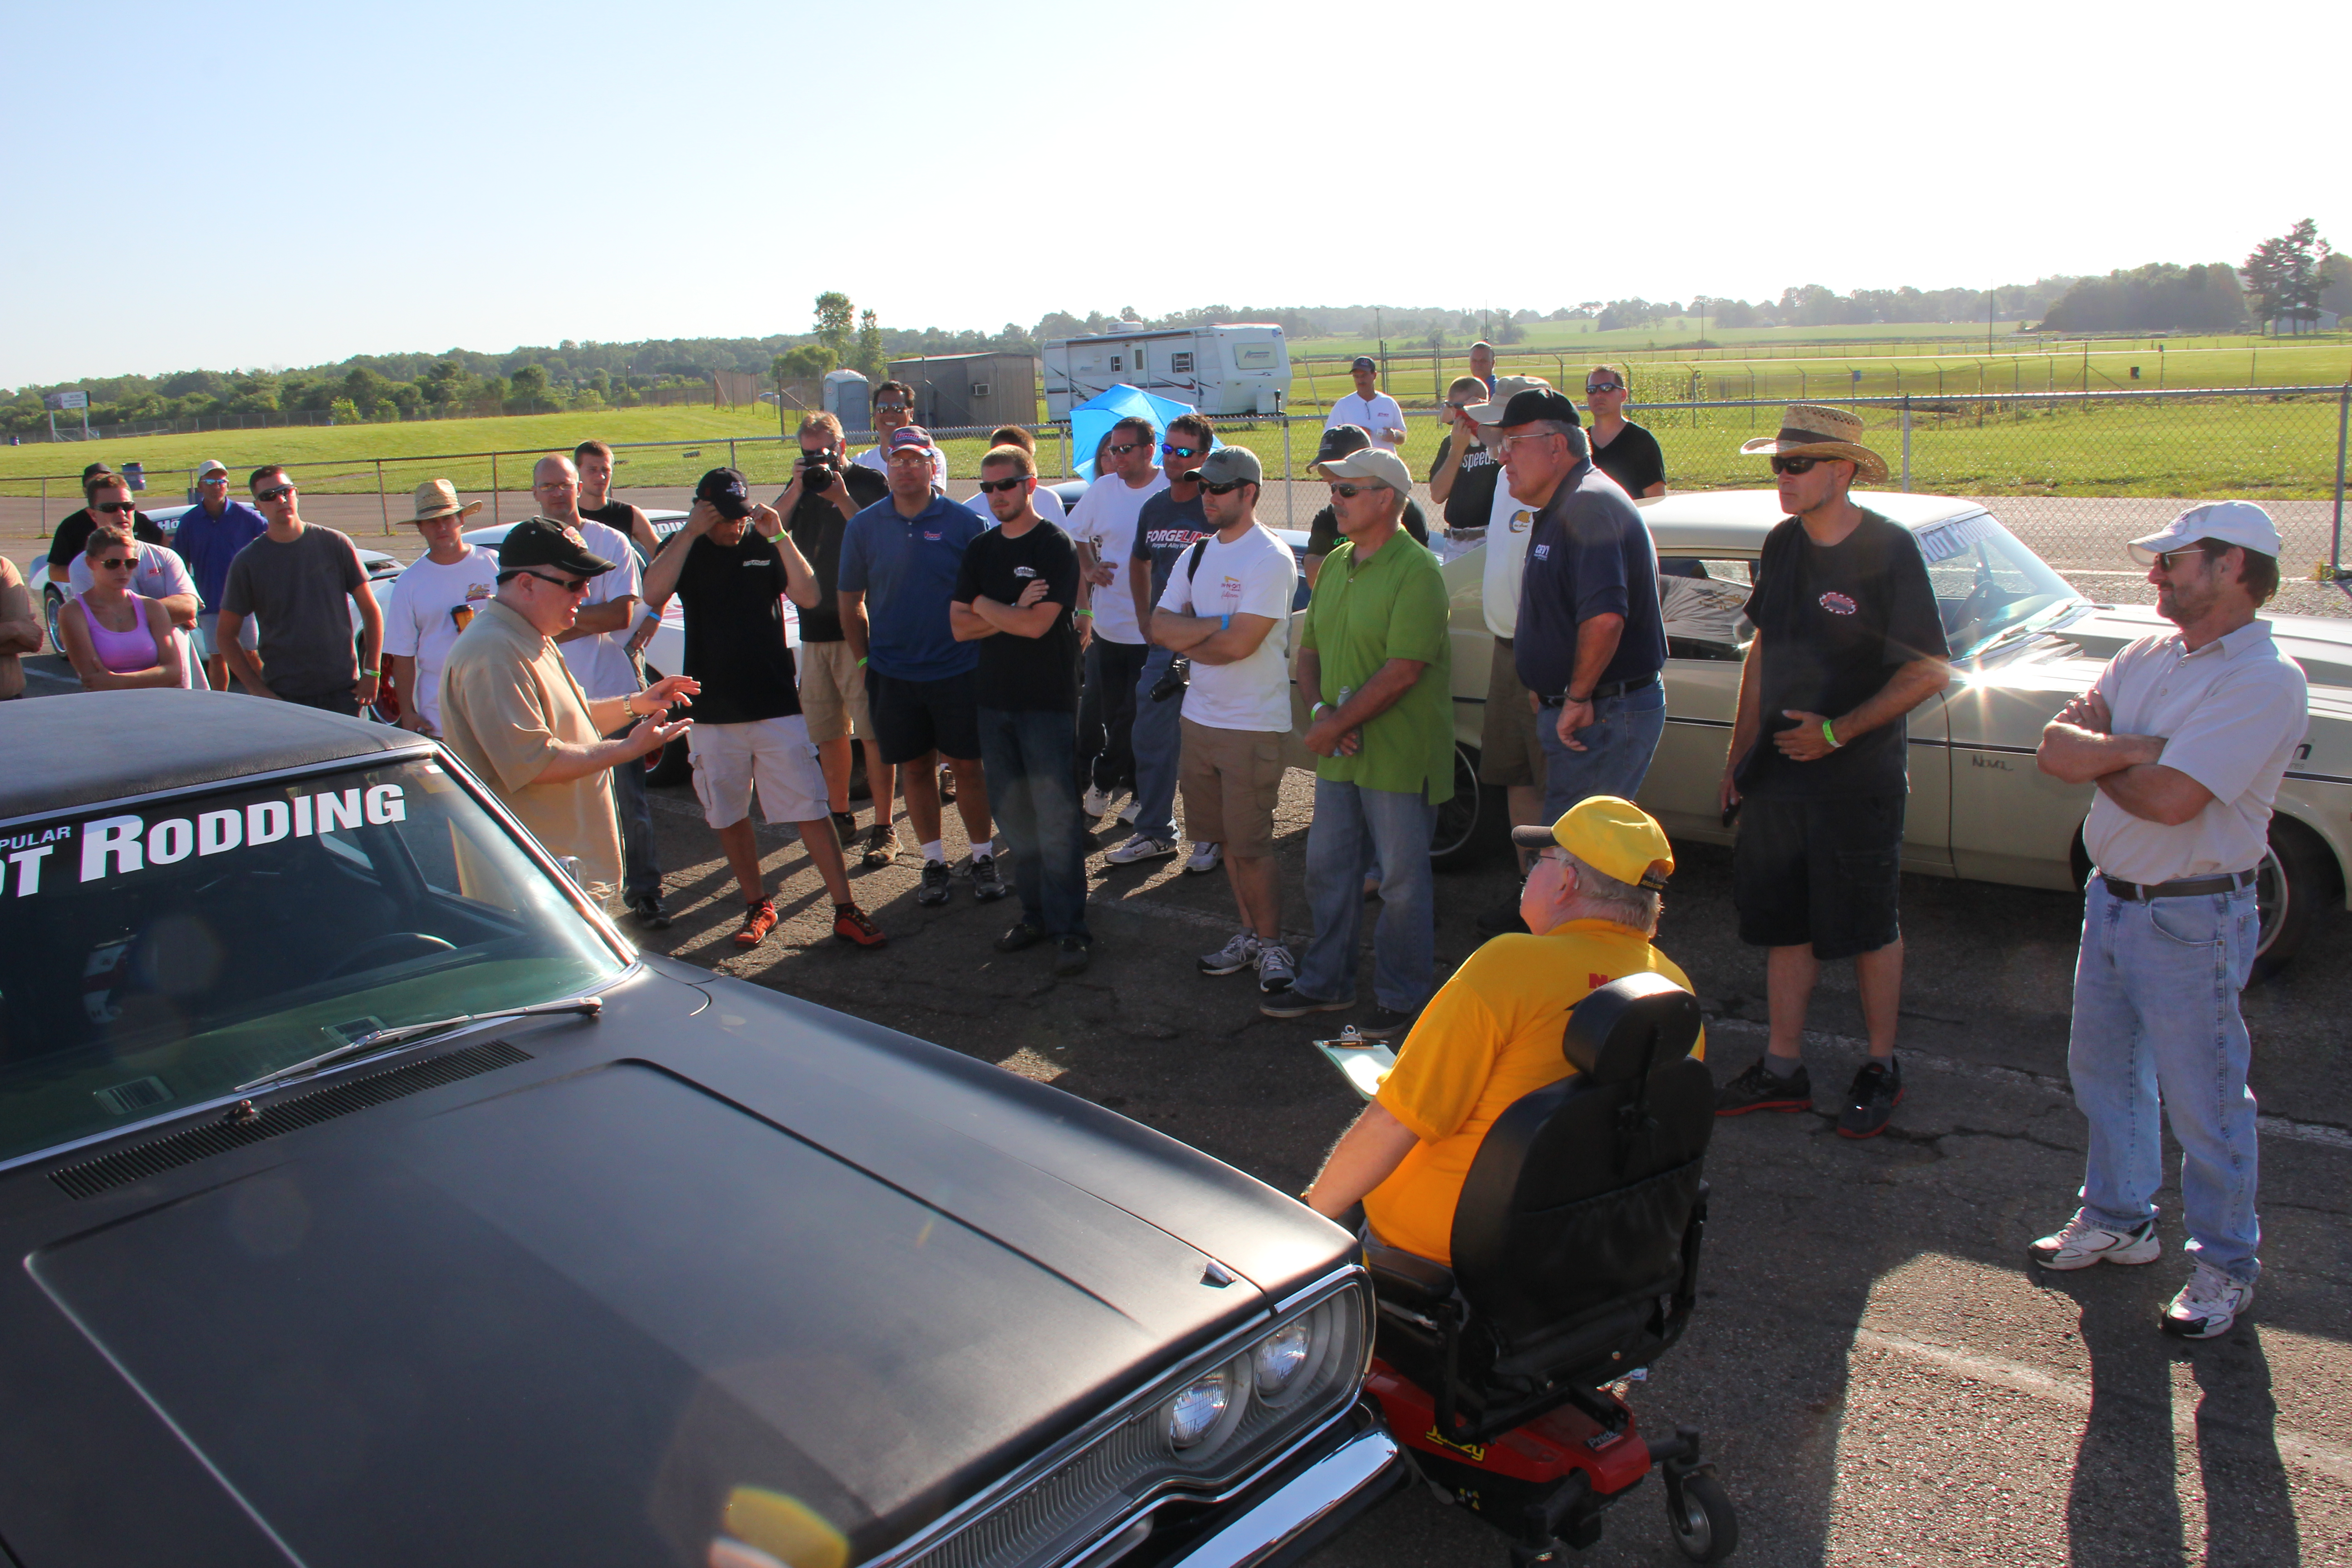 Here, Editor of Popular Hot Rodding Magainze, John Hunkins, heads up the driver's meeting, which went over the amount of runs each driver gets as well as safety. From here, we're all set to have some fun!